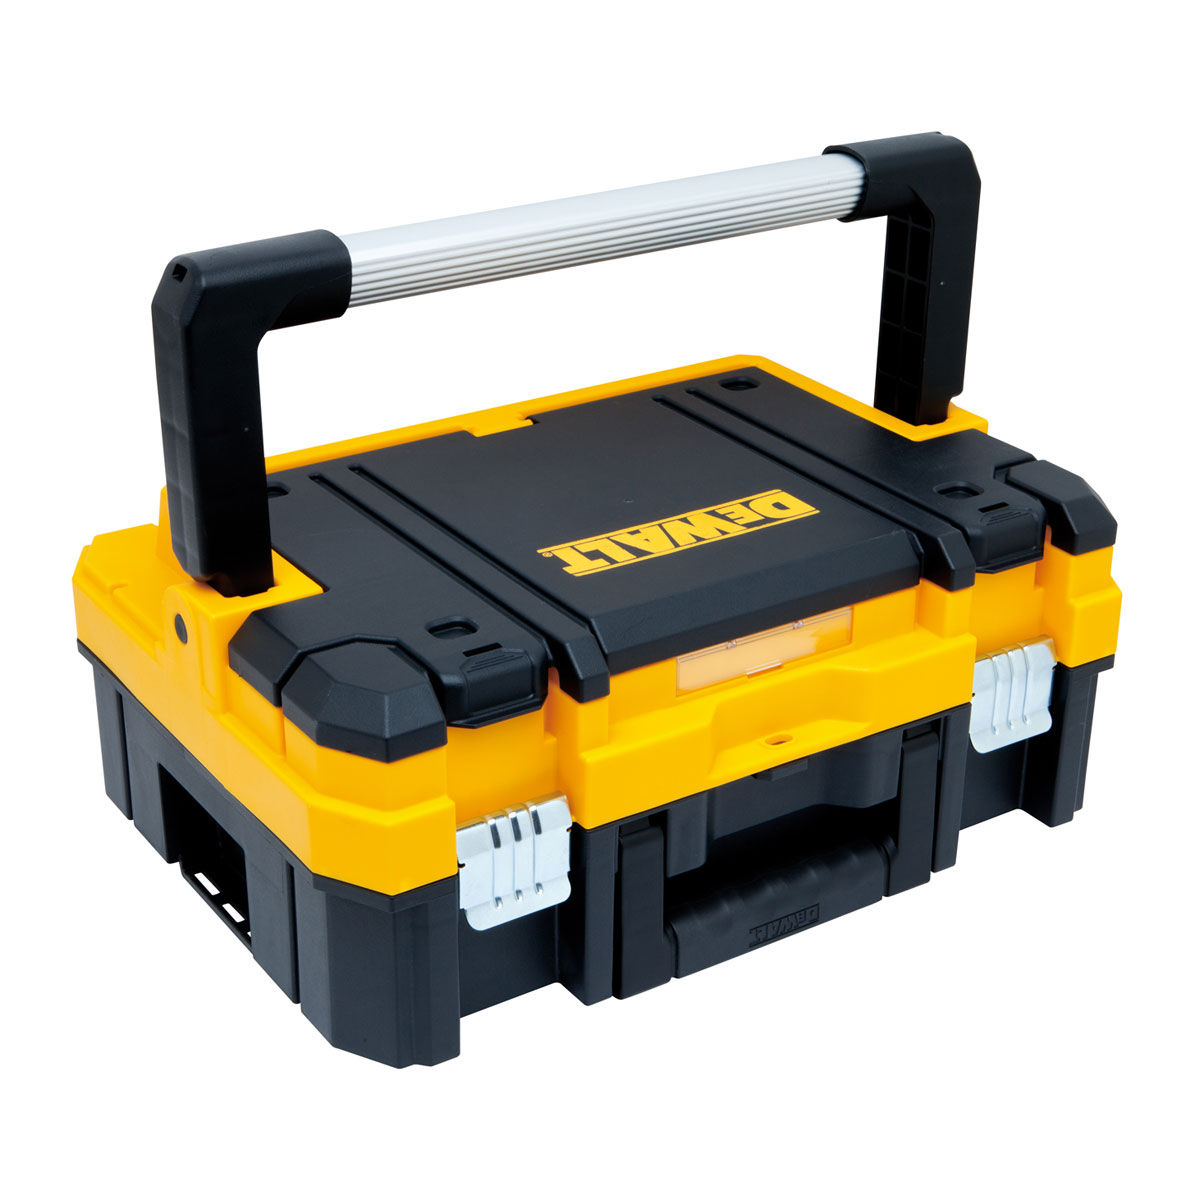 Dewalt DWST1-70704 TStak I Tool Storage Box with Organiser